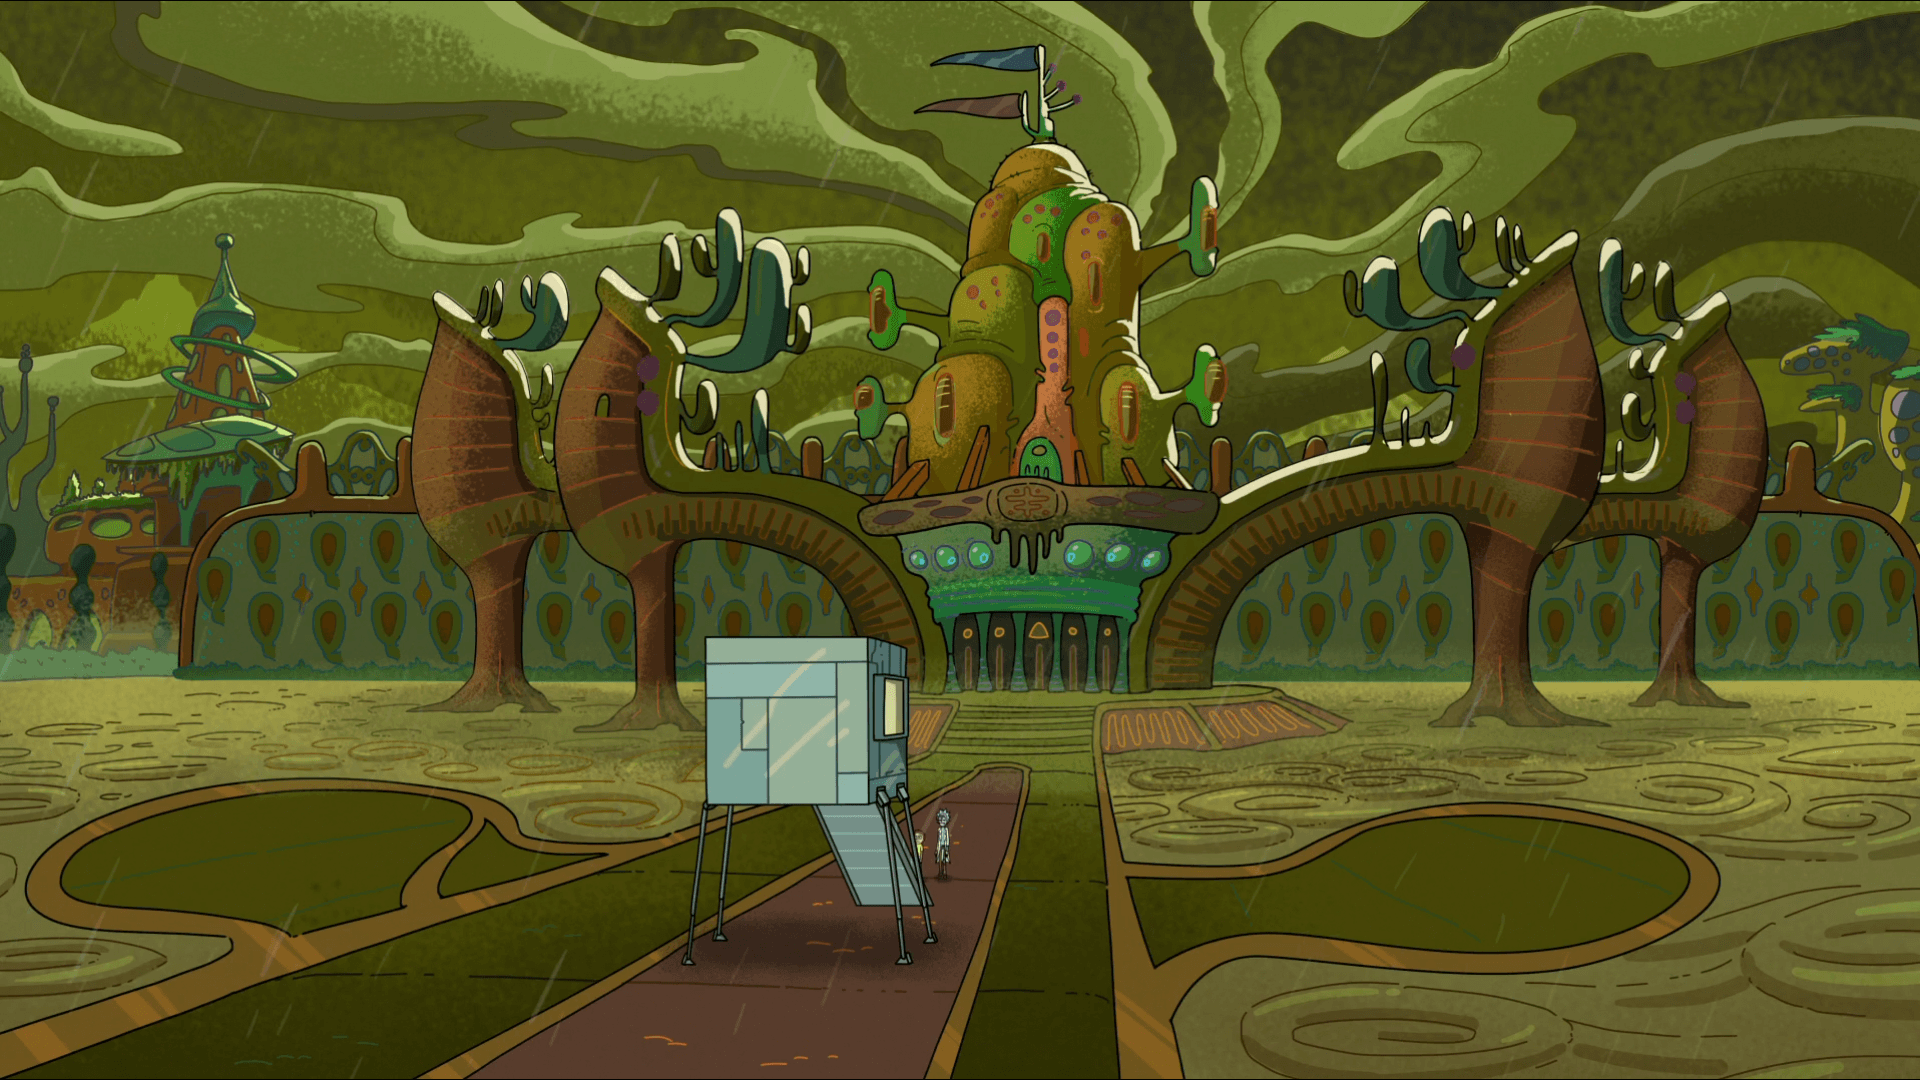 rick and morty pc wallpaper, rick and morty hd wallpaper